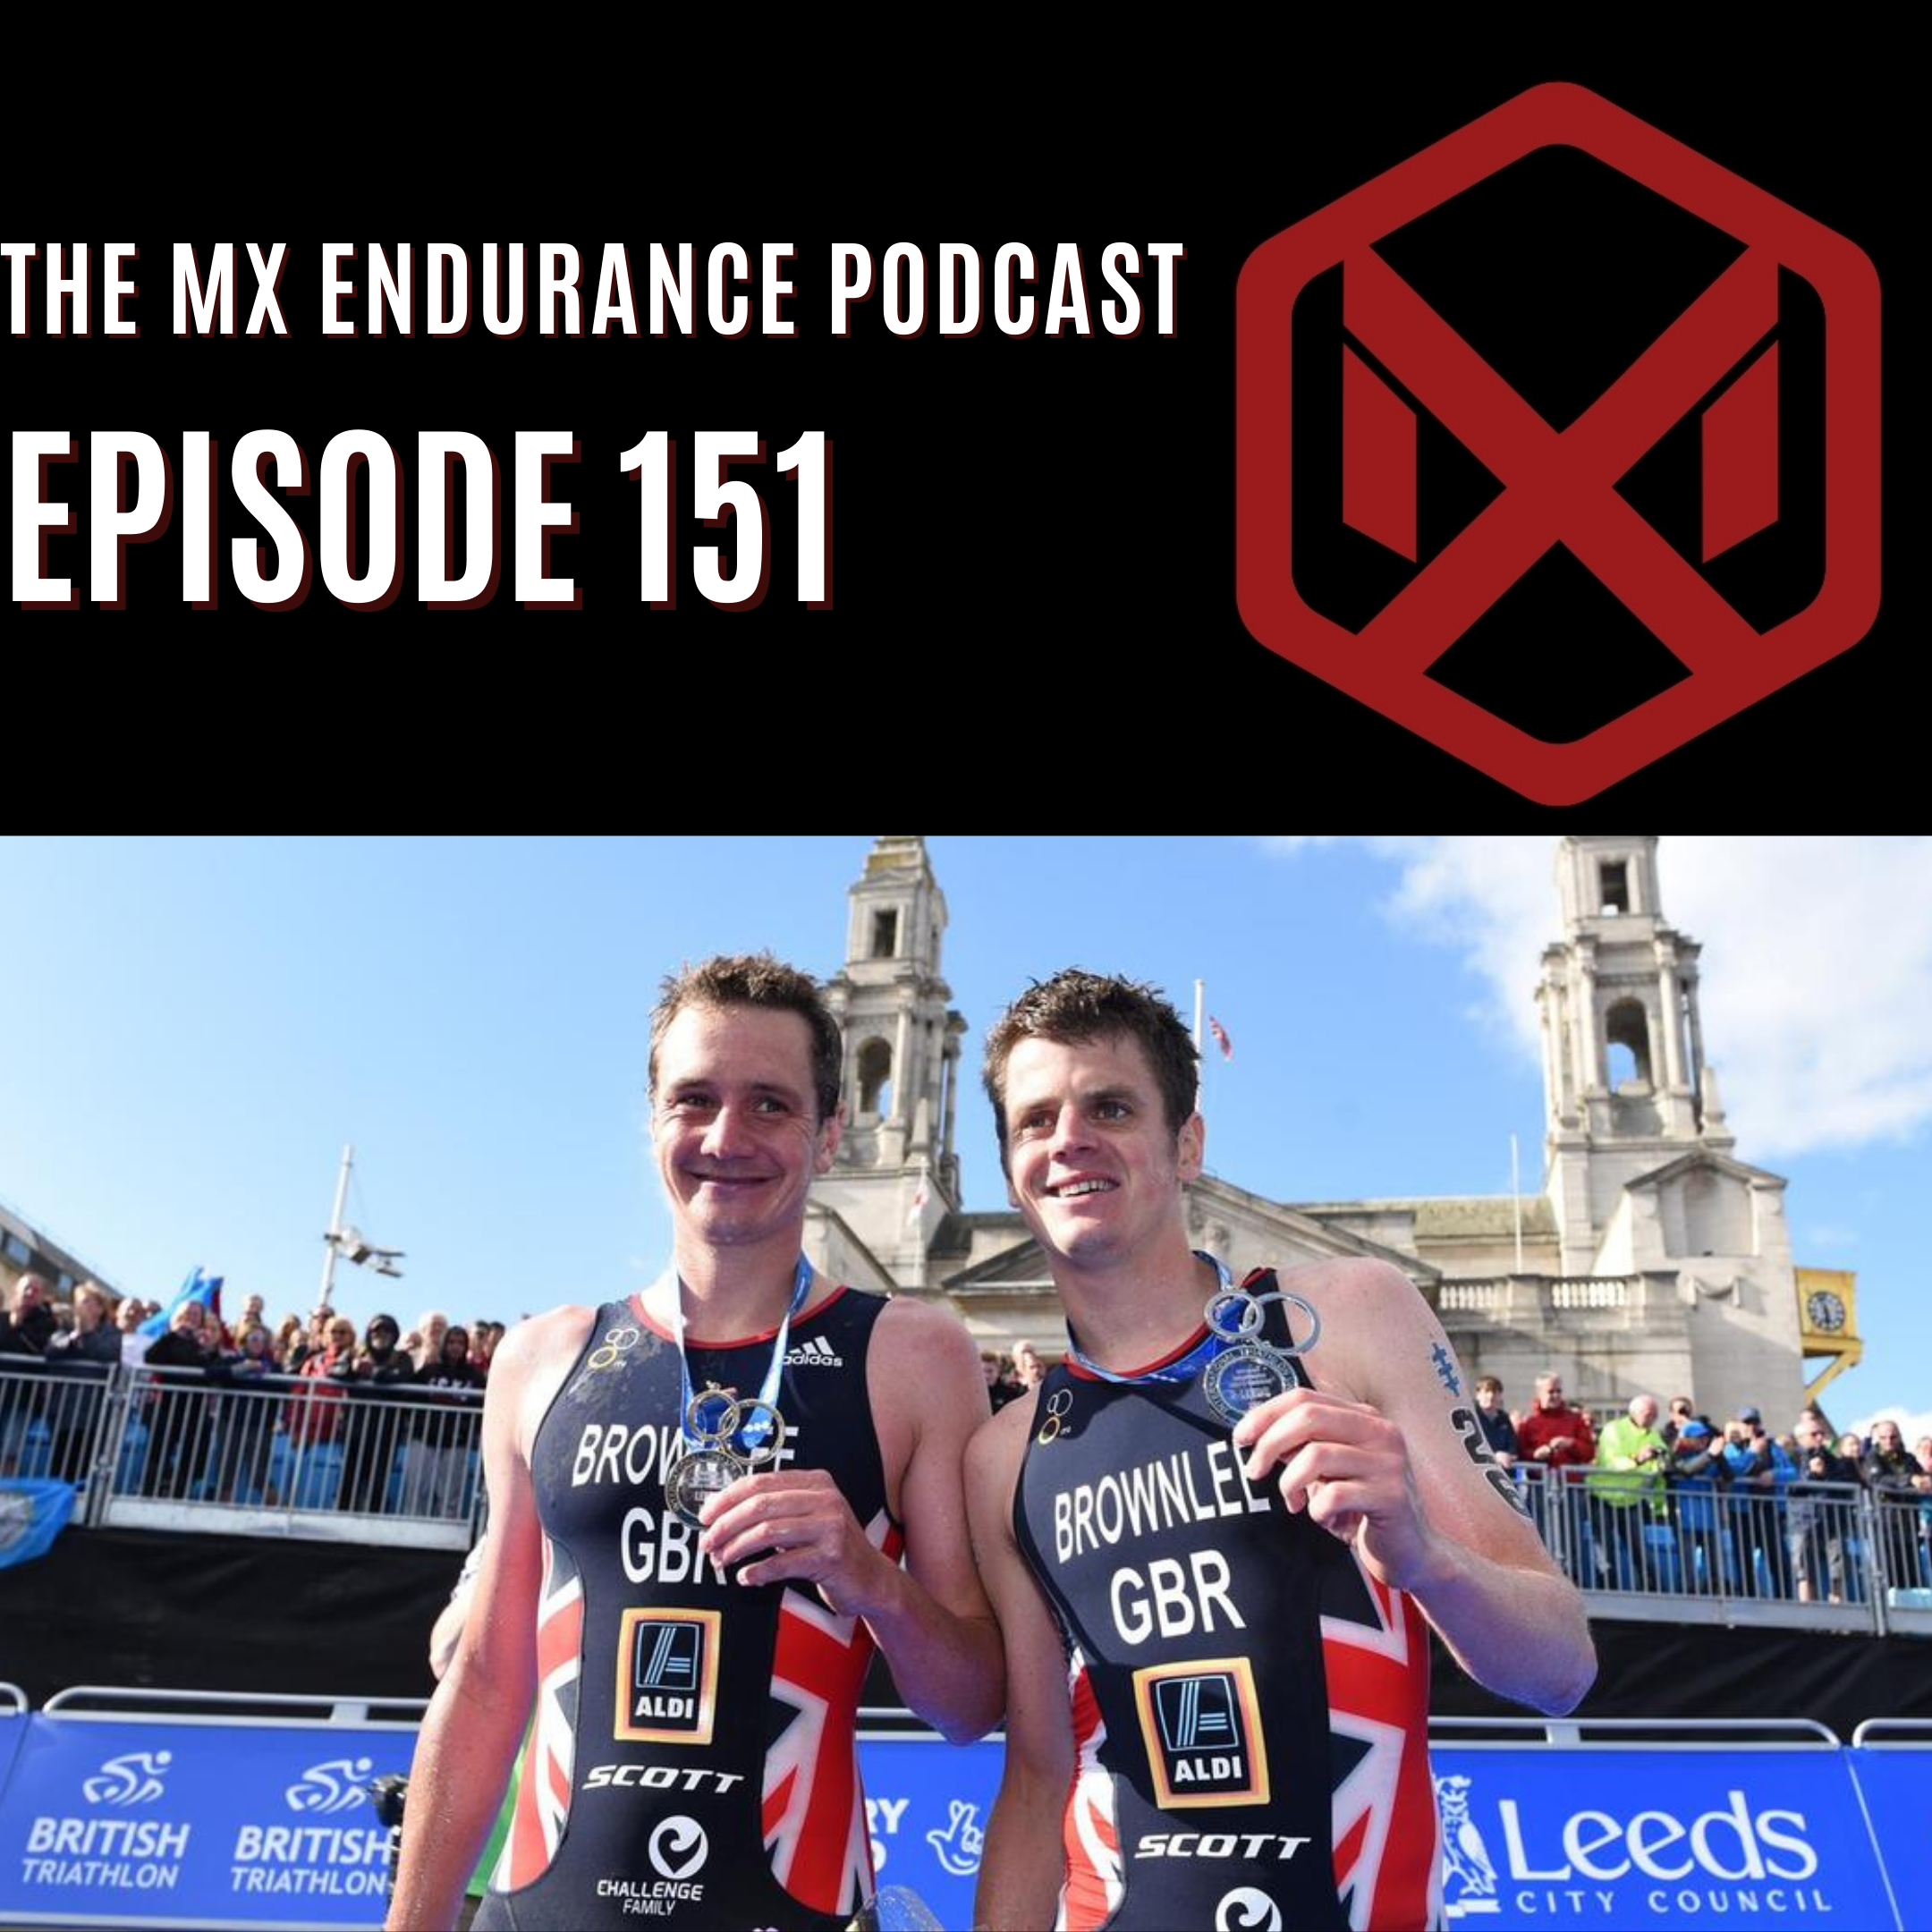 #151 - Backing The Brownlee Brothers